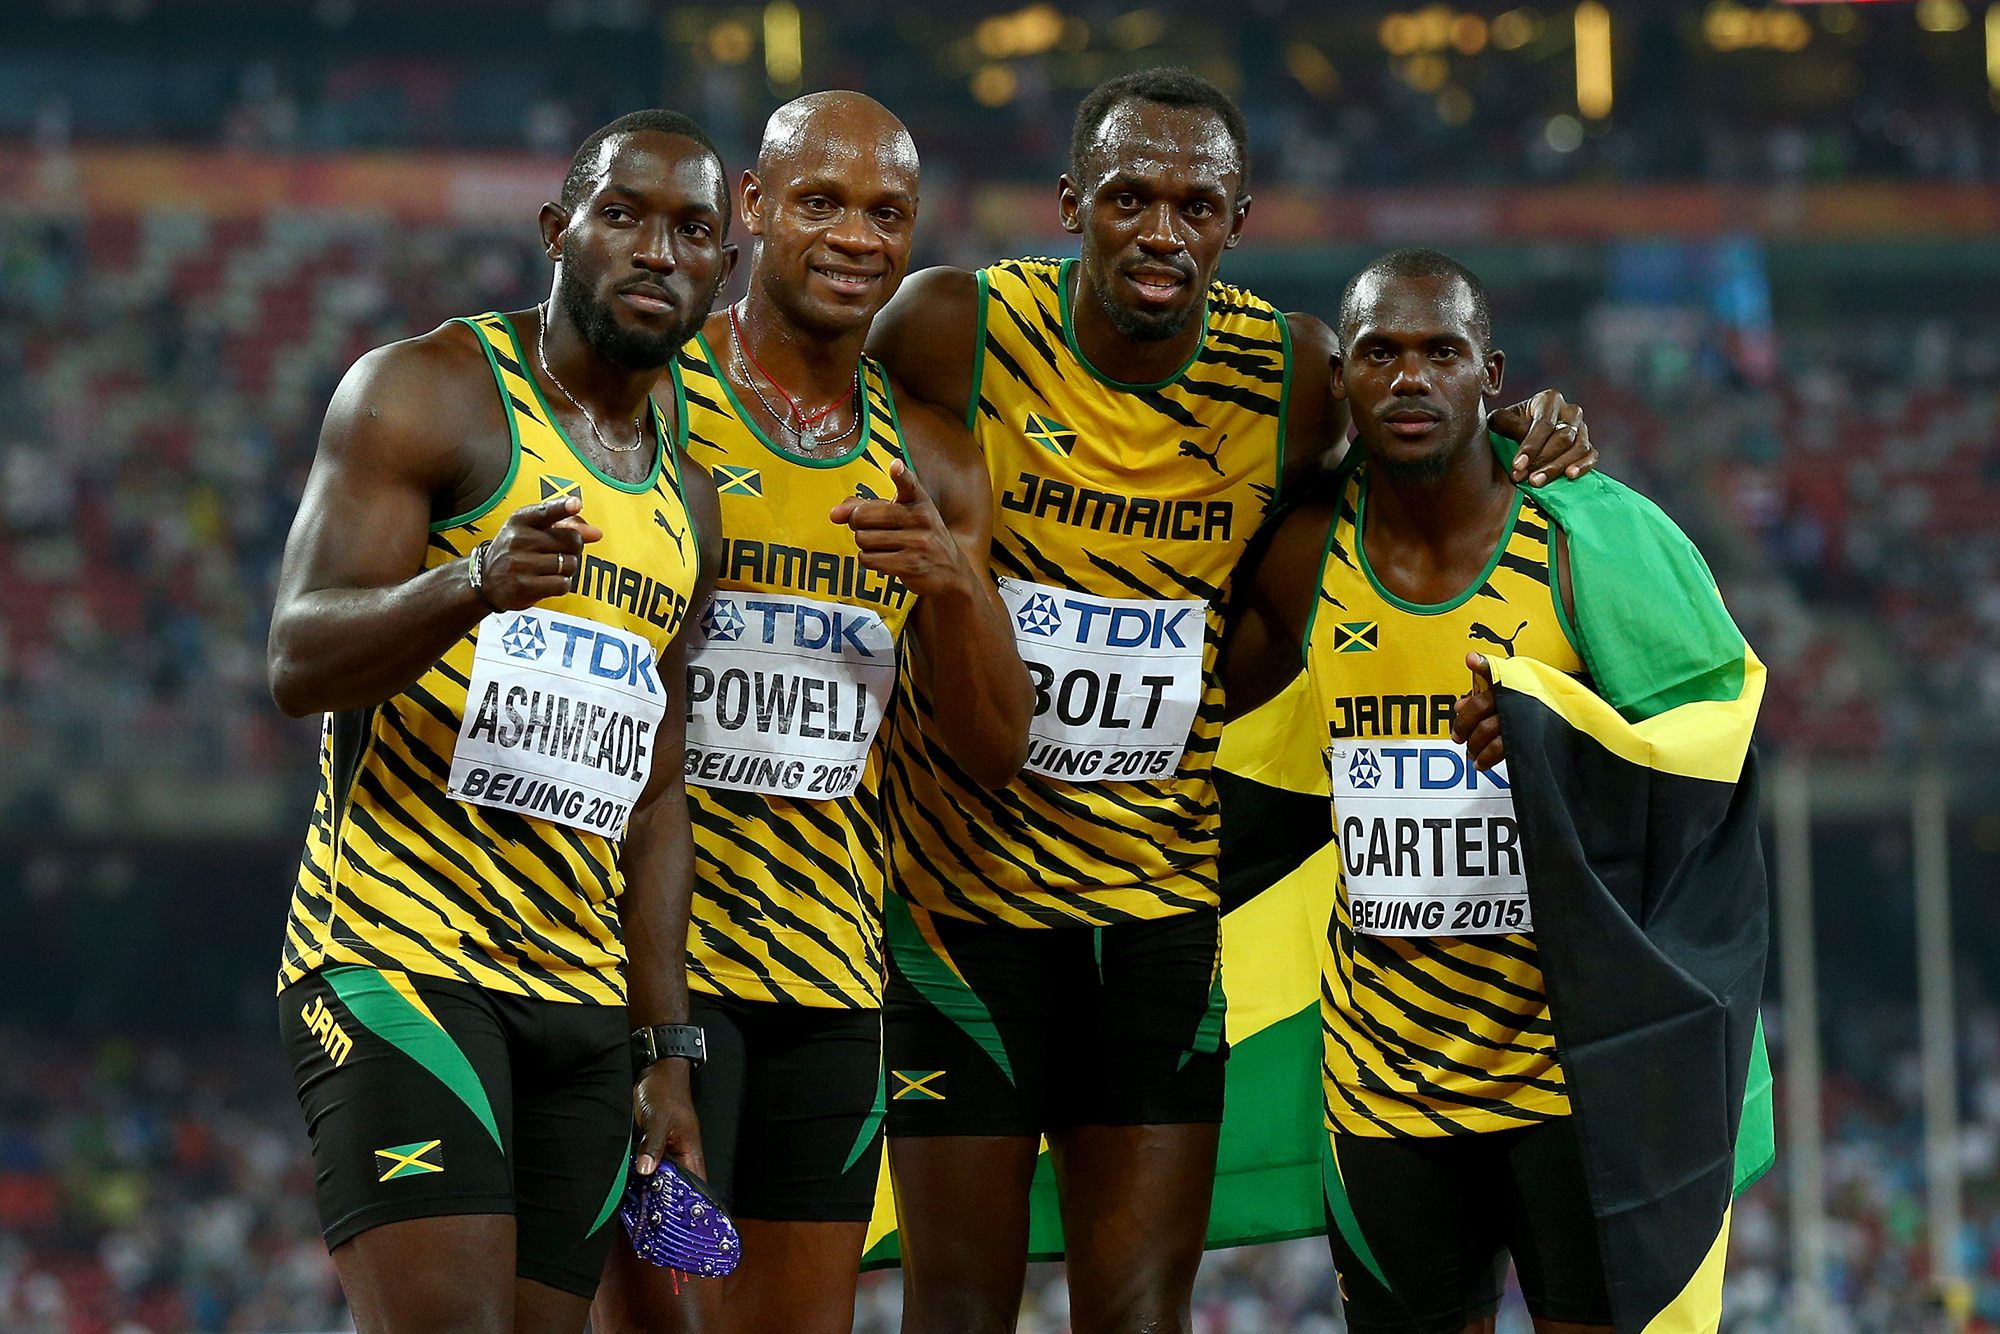 BEIJING, CHINA - AUGUST 29: Nickel Ashmeade of Jamaica, Asafa Powell of Jamaica, Usain Bolt of Jamaica of Jamaica and Nesta Carter of Jamaica celebrate after winning gold in the Men's 4x100 Metres Relay final during day eight of the 15th IAAF World Athletics Championships Beijing 2015 at Beijing National Stadium on August 29, 2015 in Beijing, China. (Photo by Ian Walton/Getty Images)